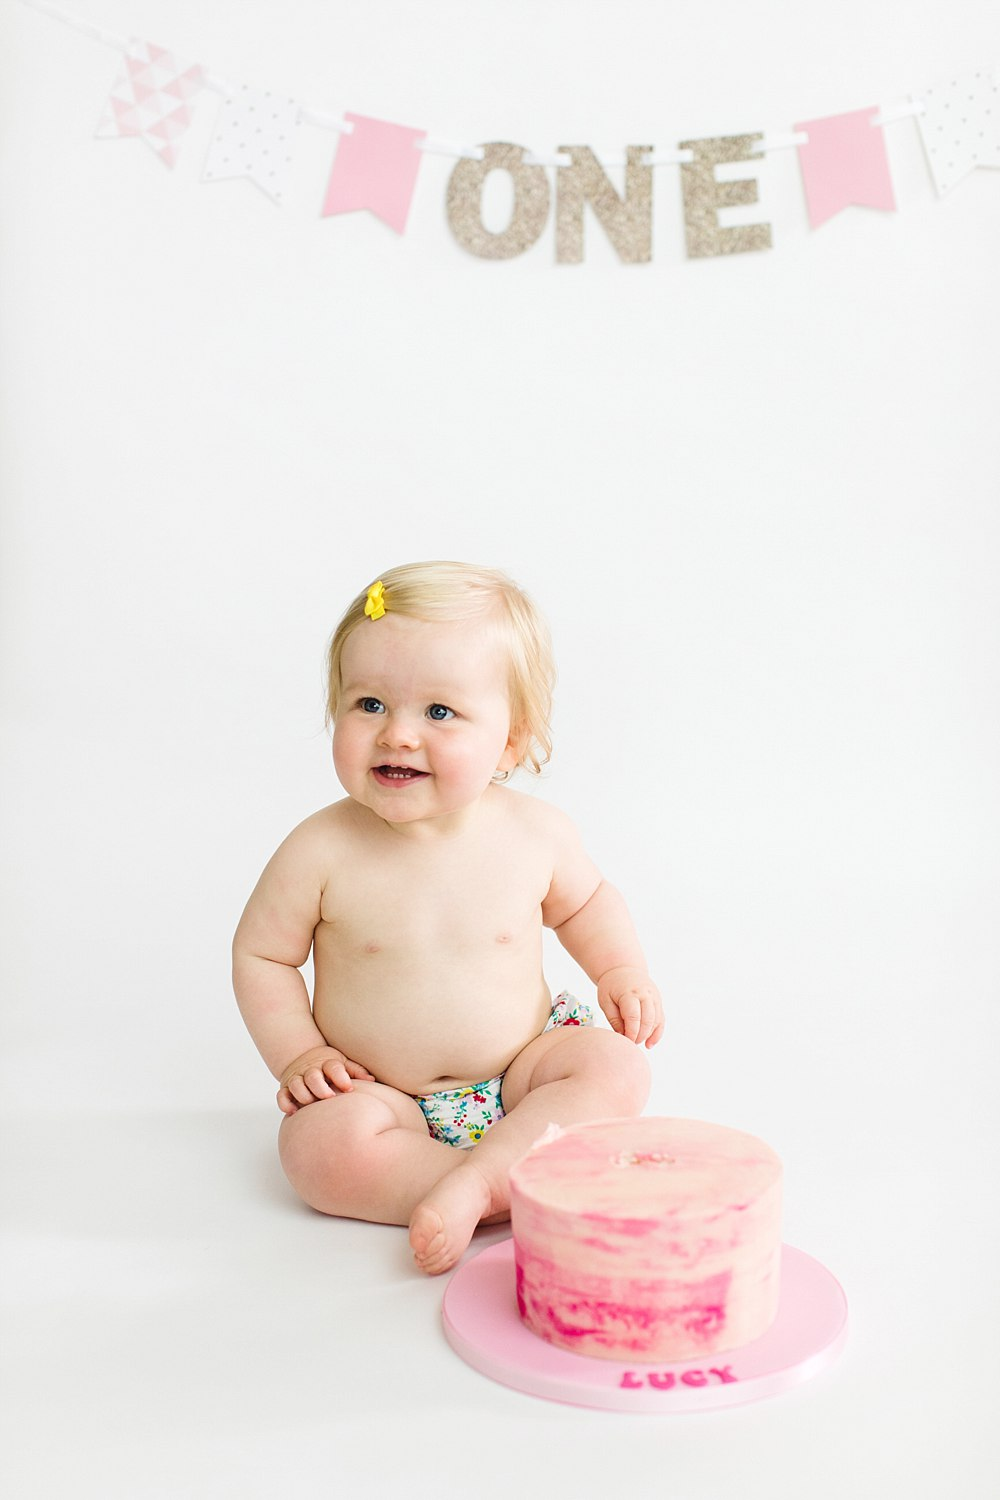 lucy cake smash one year old shoot_-7.jpg